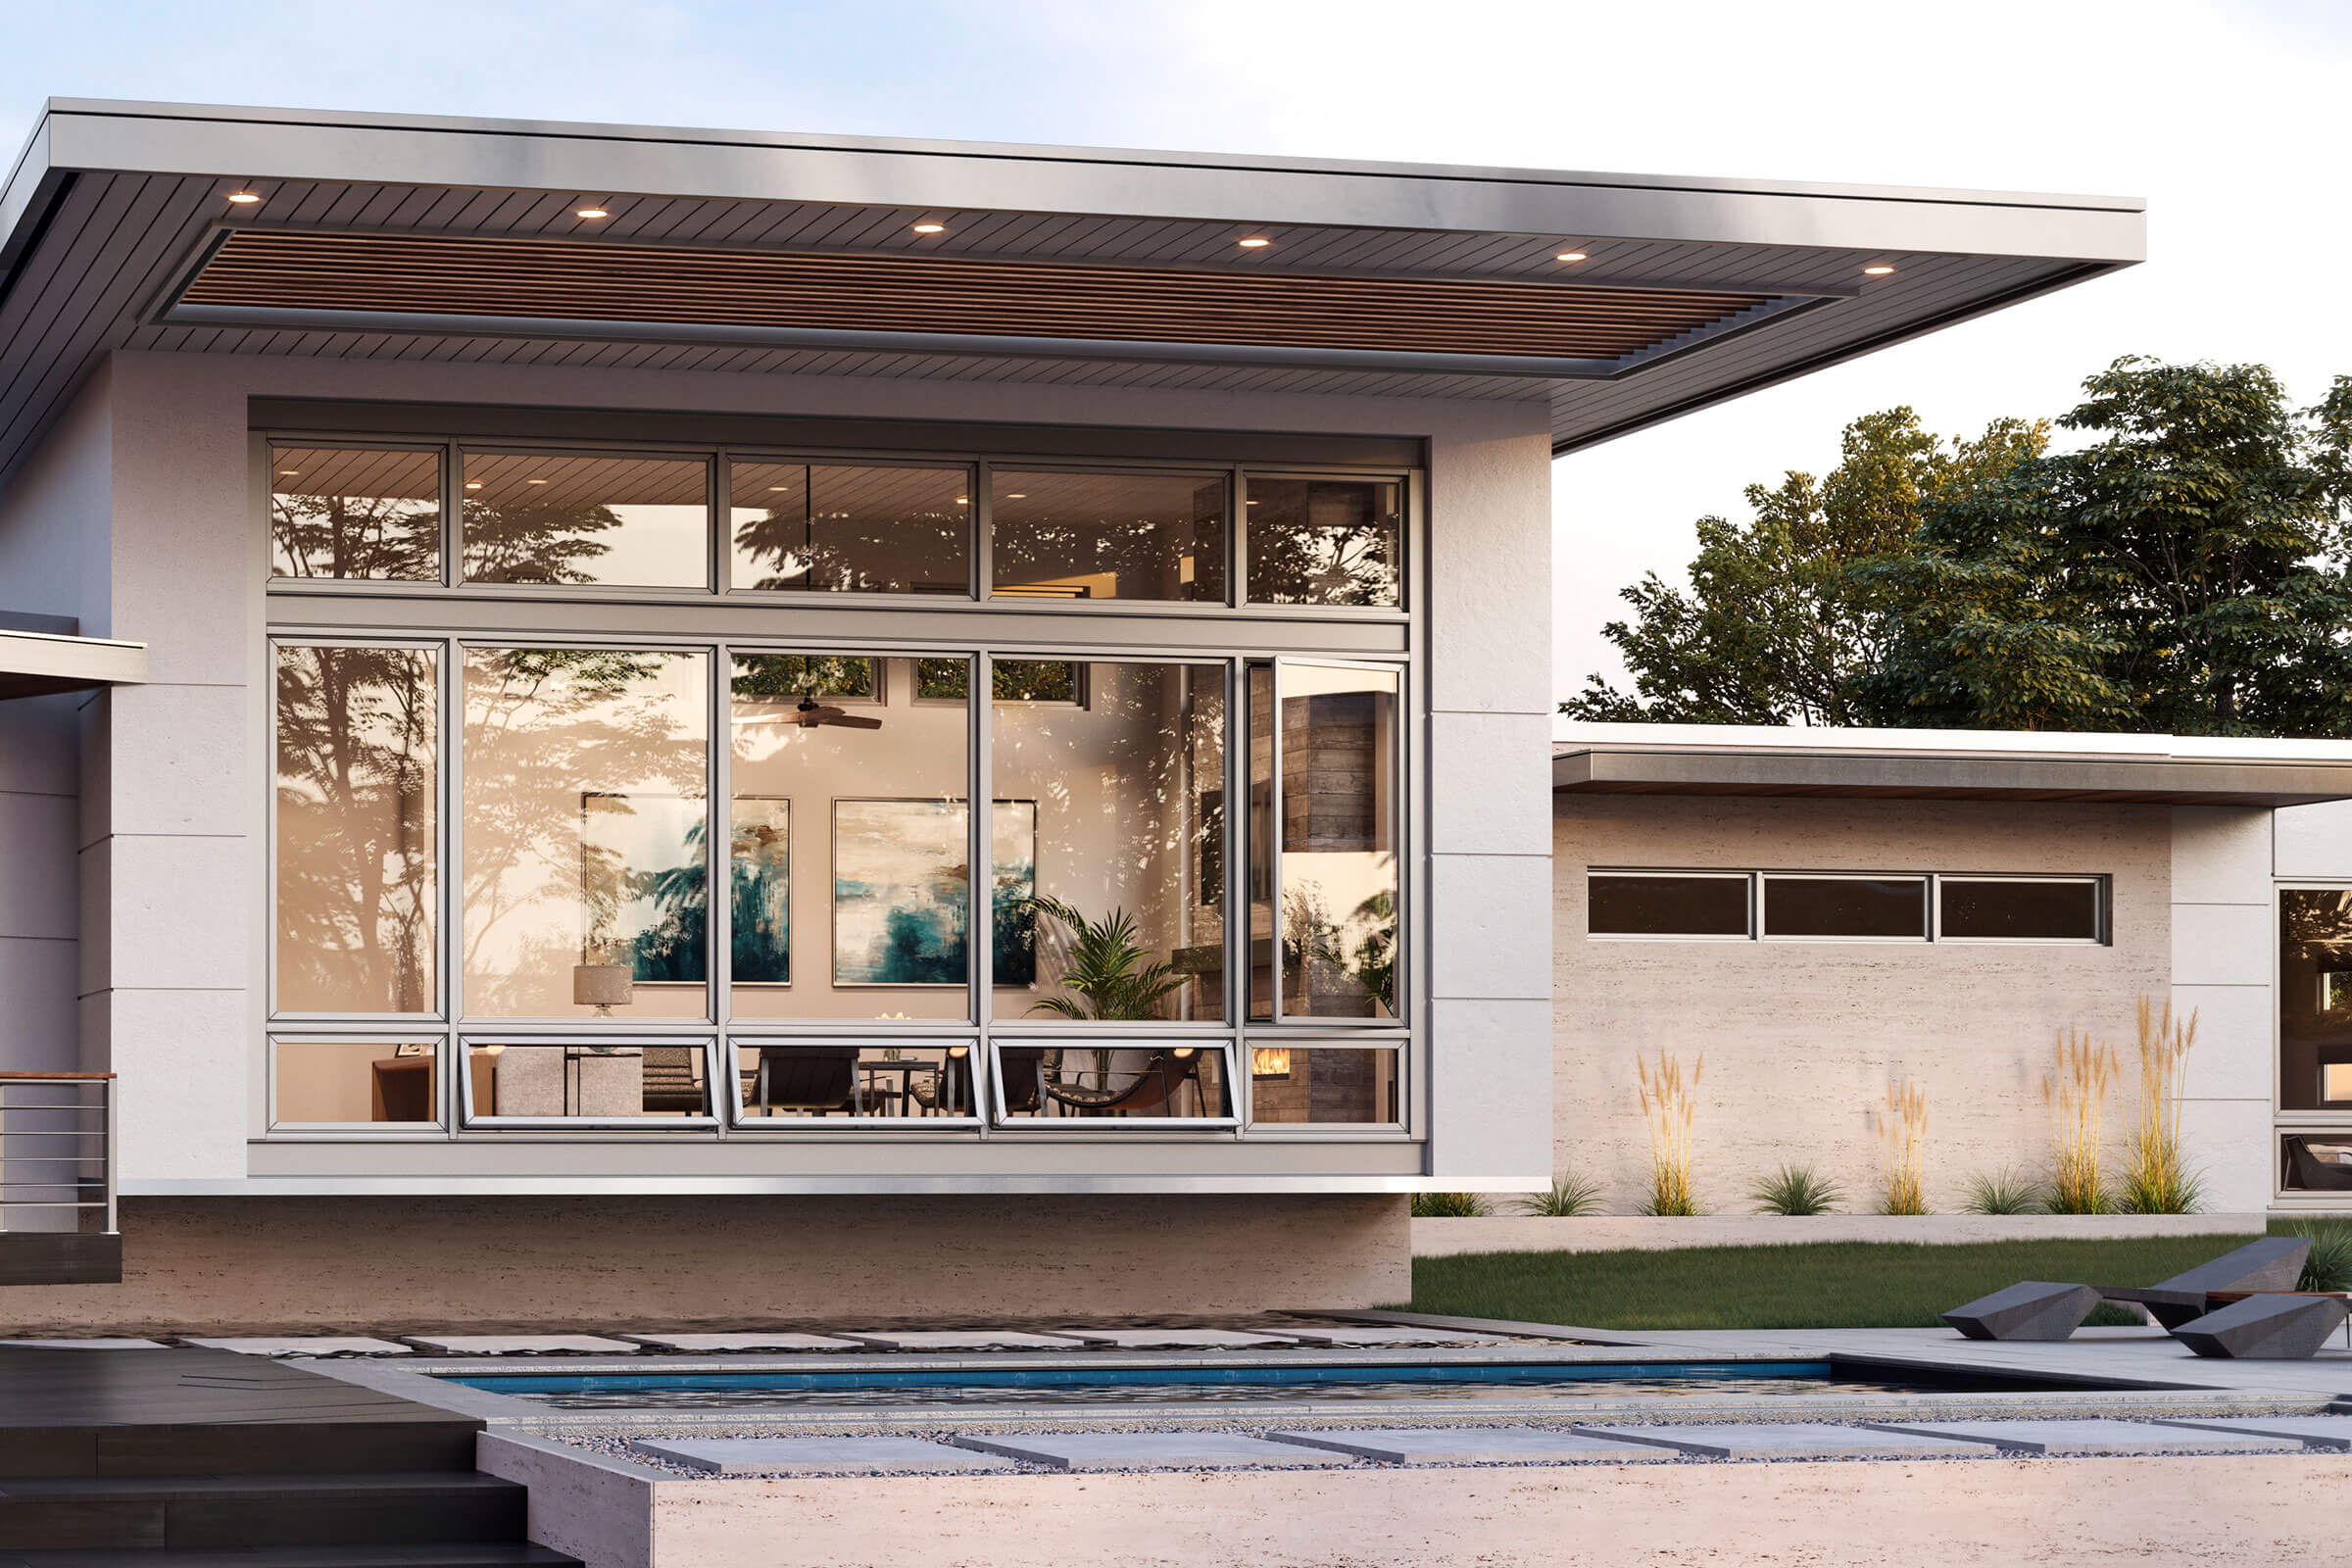 Exterior View Of Modern House With Signature Modern Casement Windows